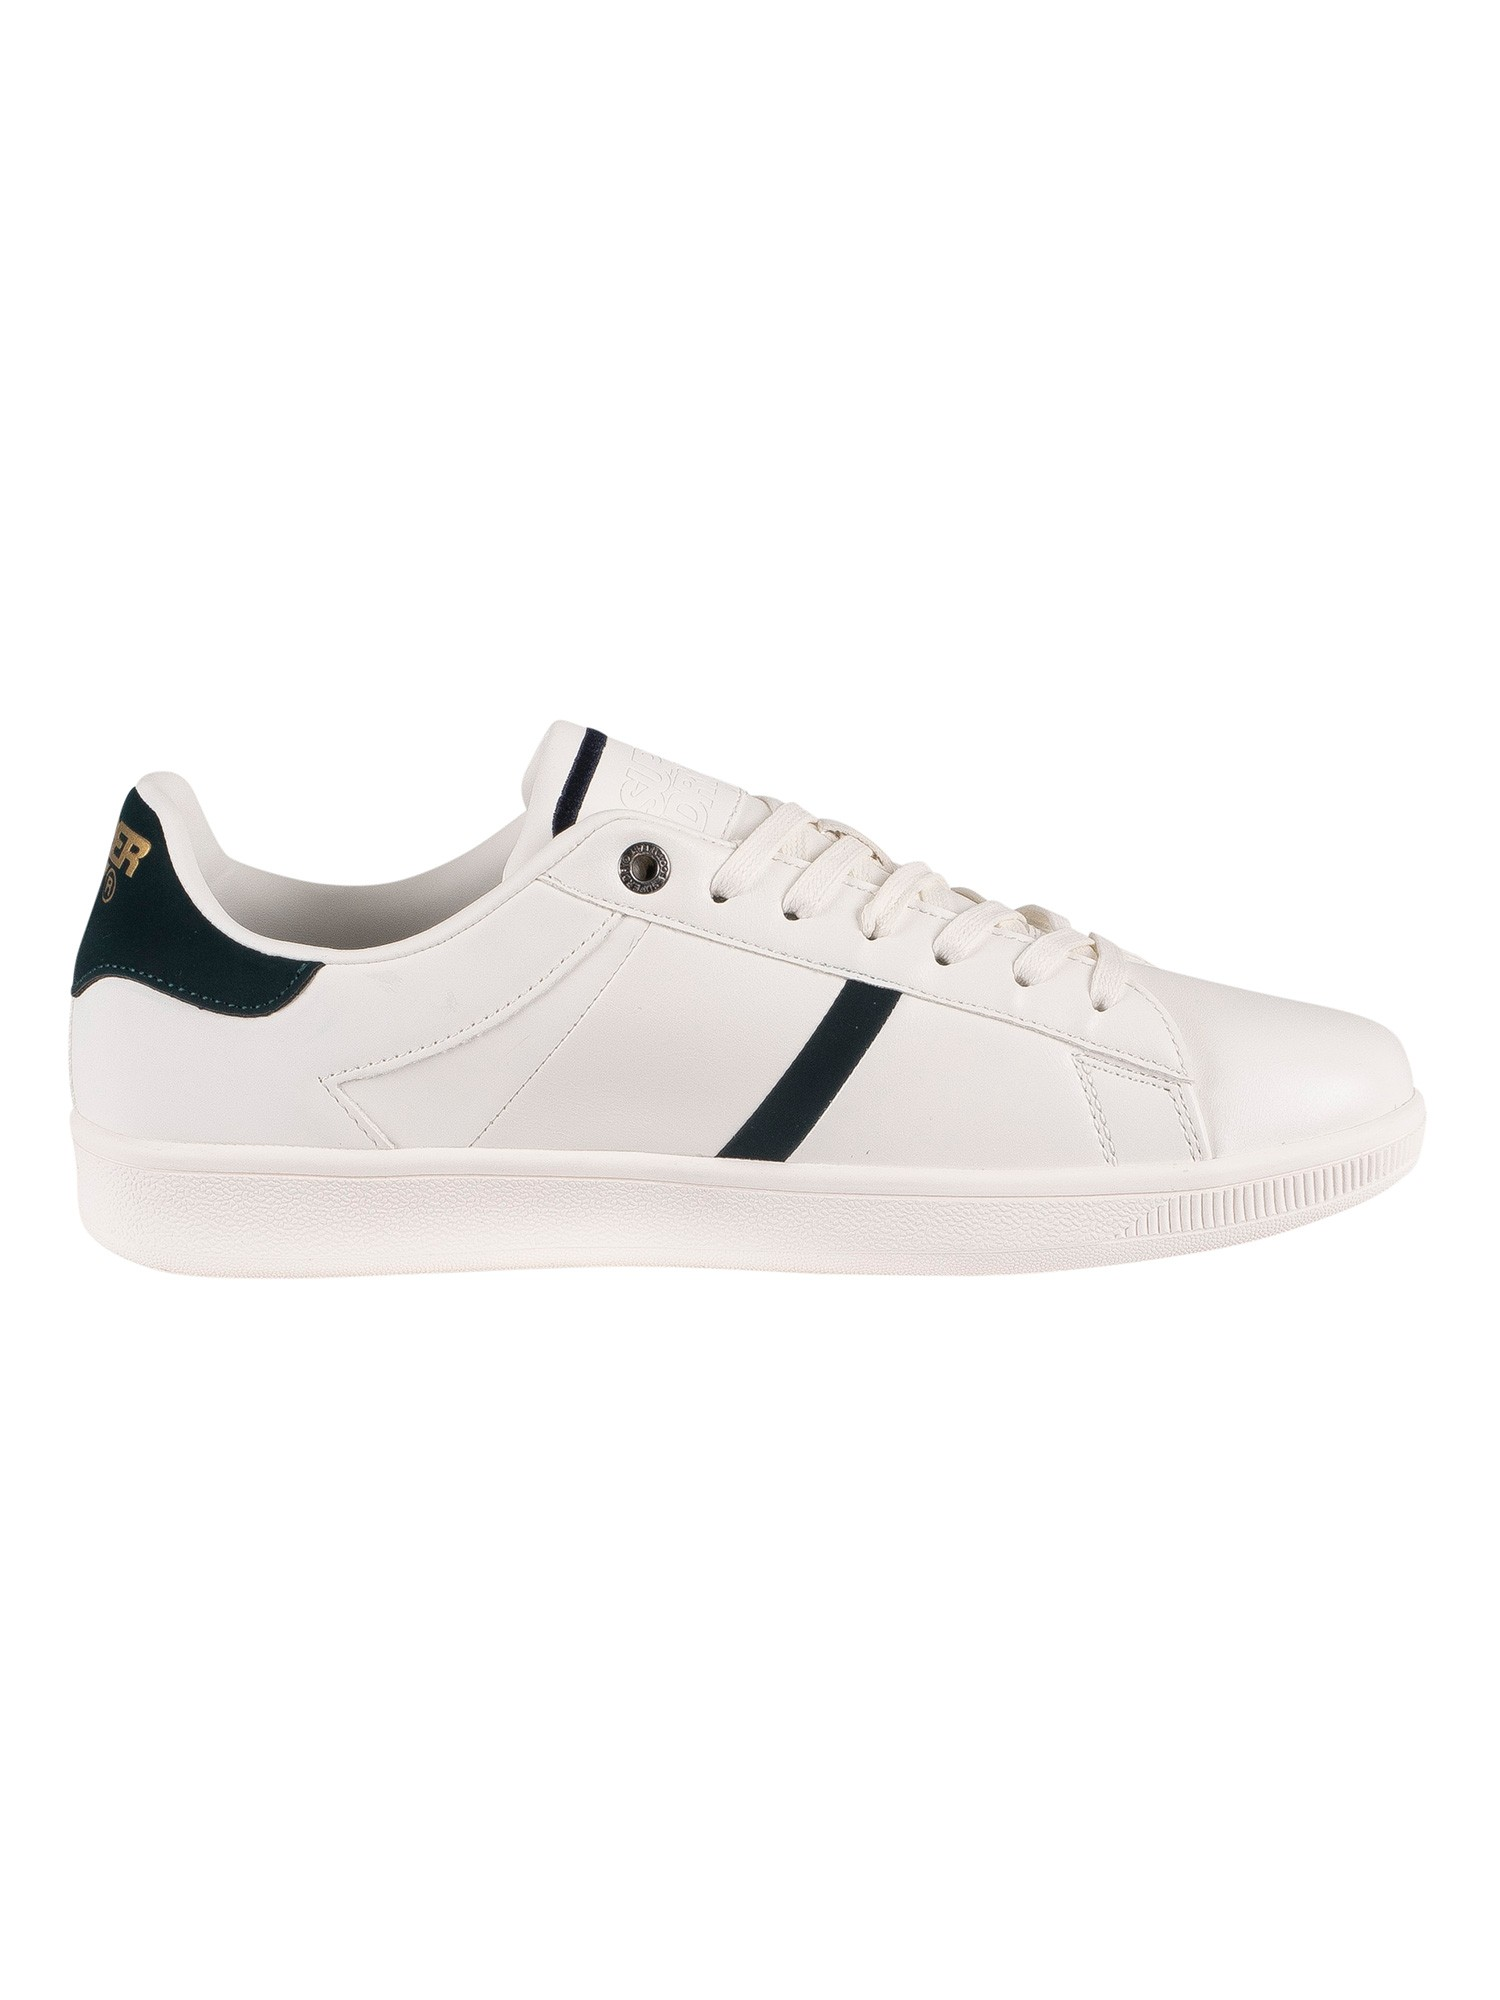 Superdry Sleek Tennis Core Trainers - Optic